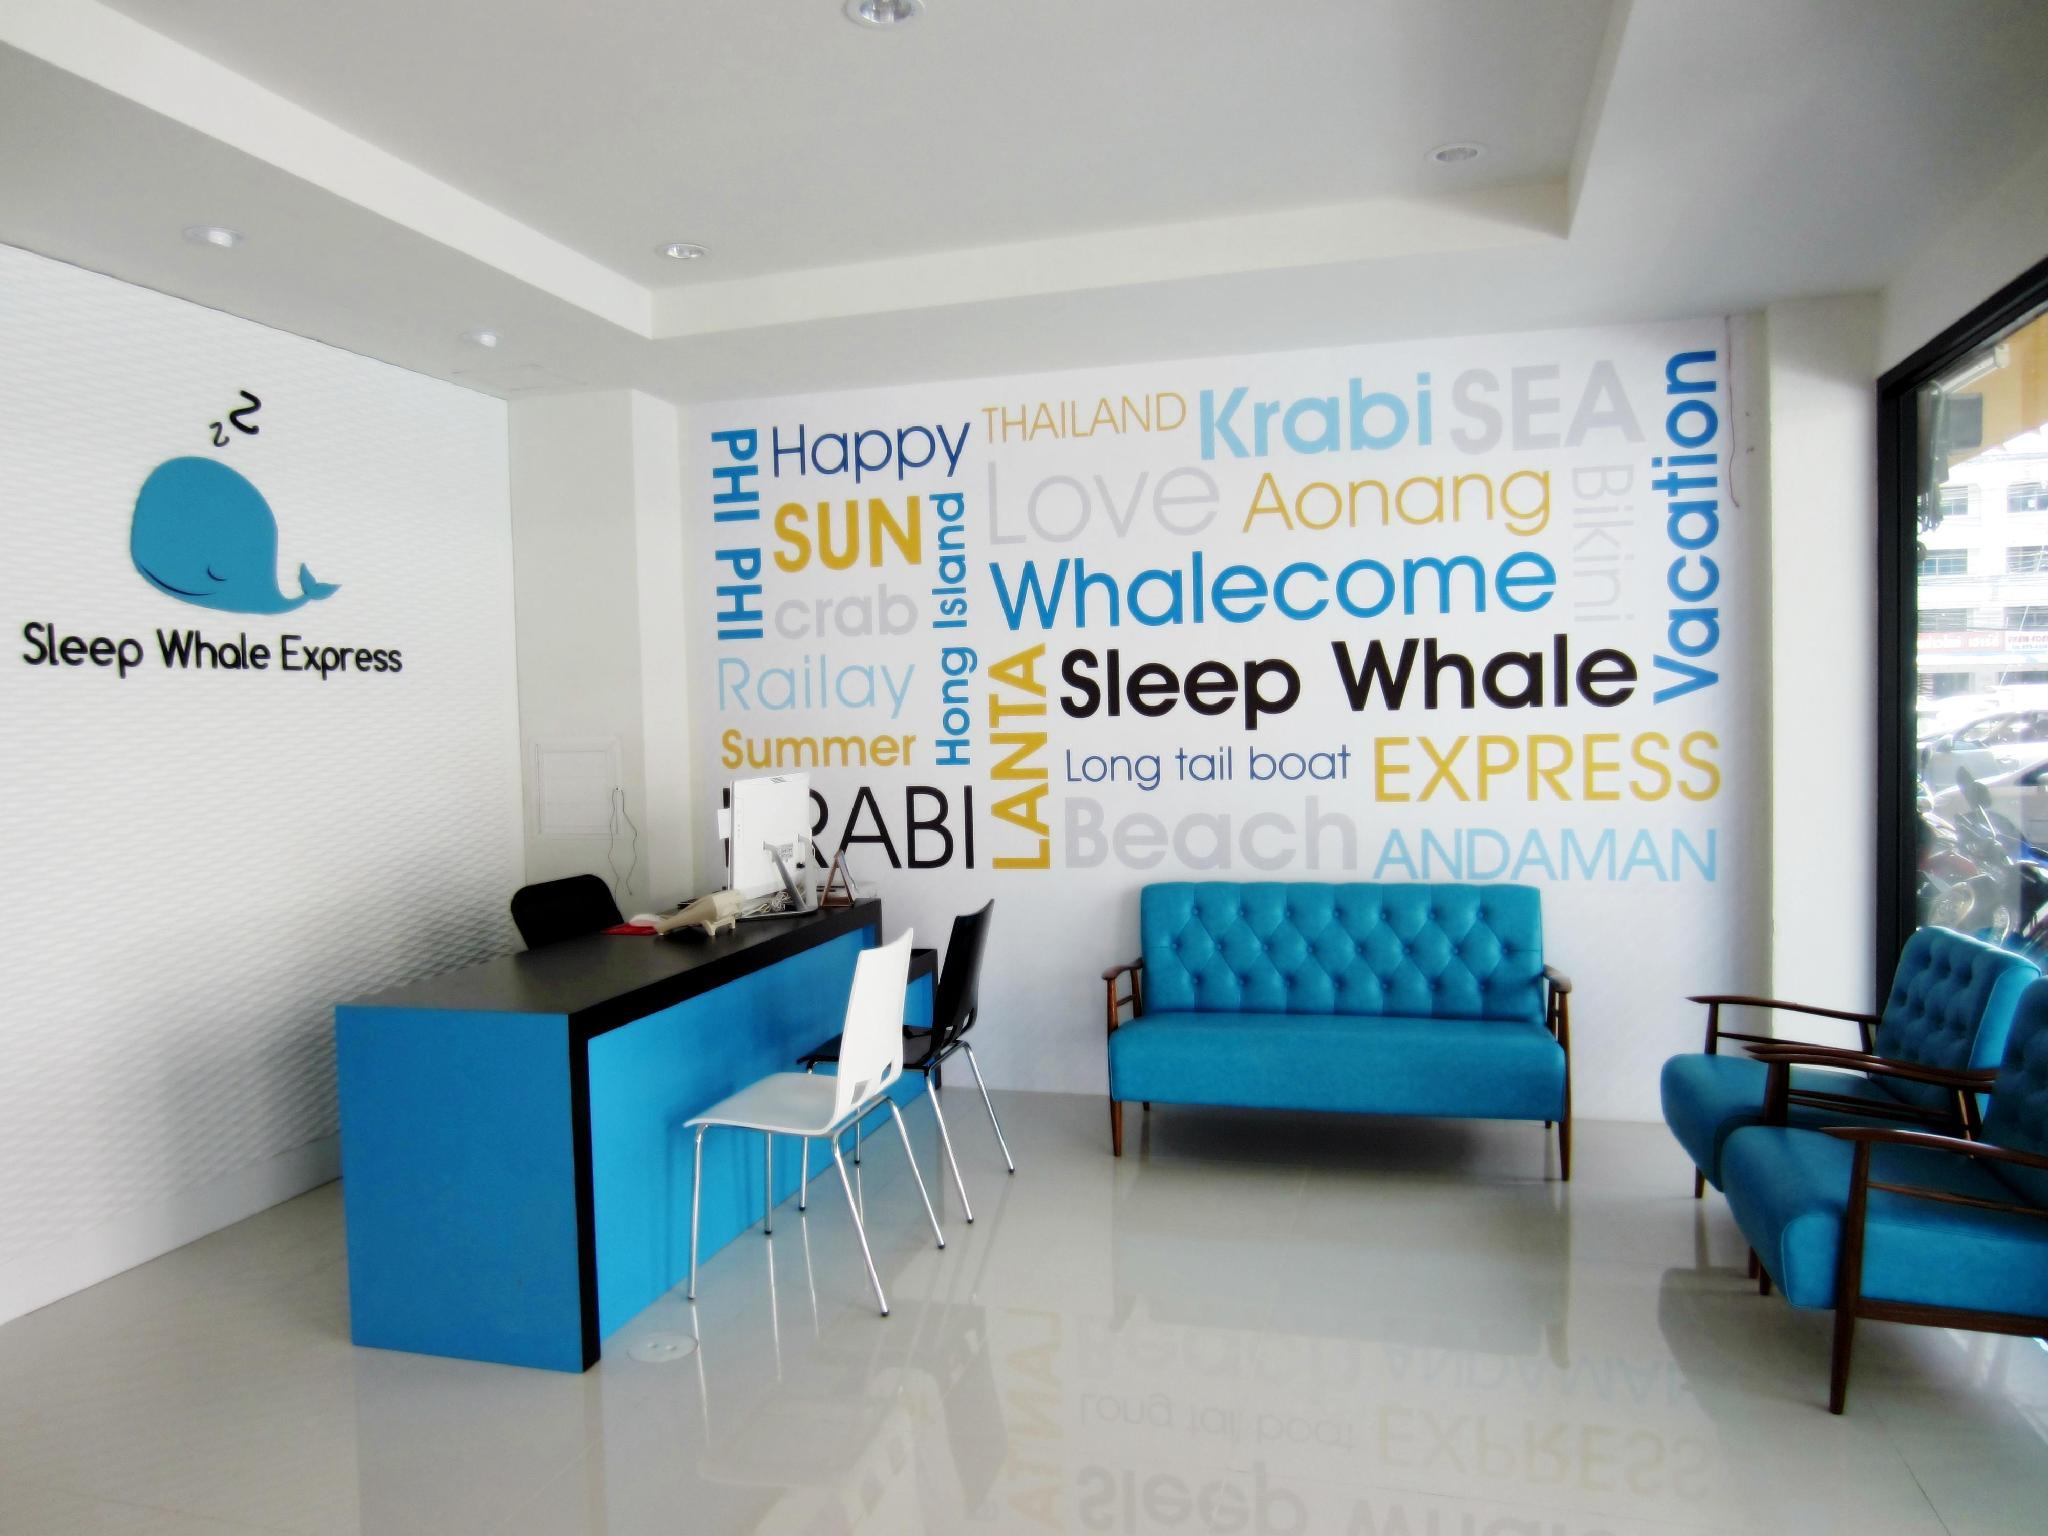 Sleep Whale Express Hotel Krabi